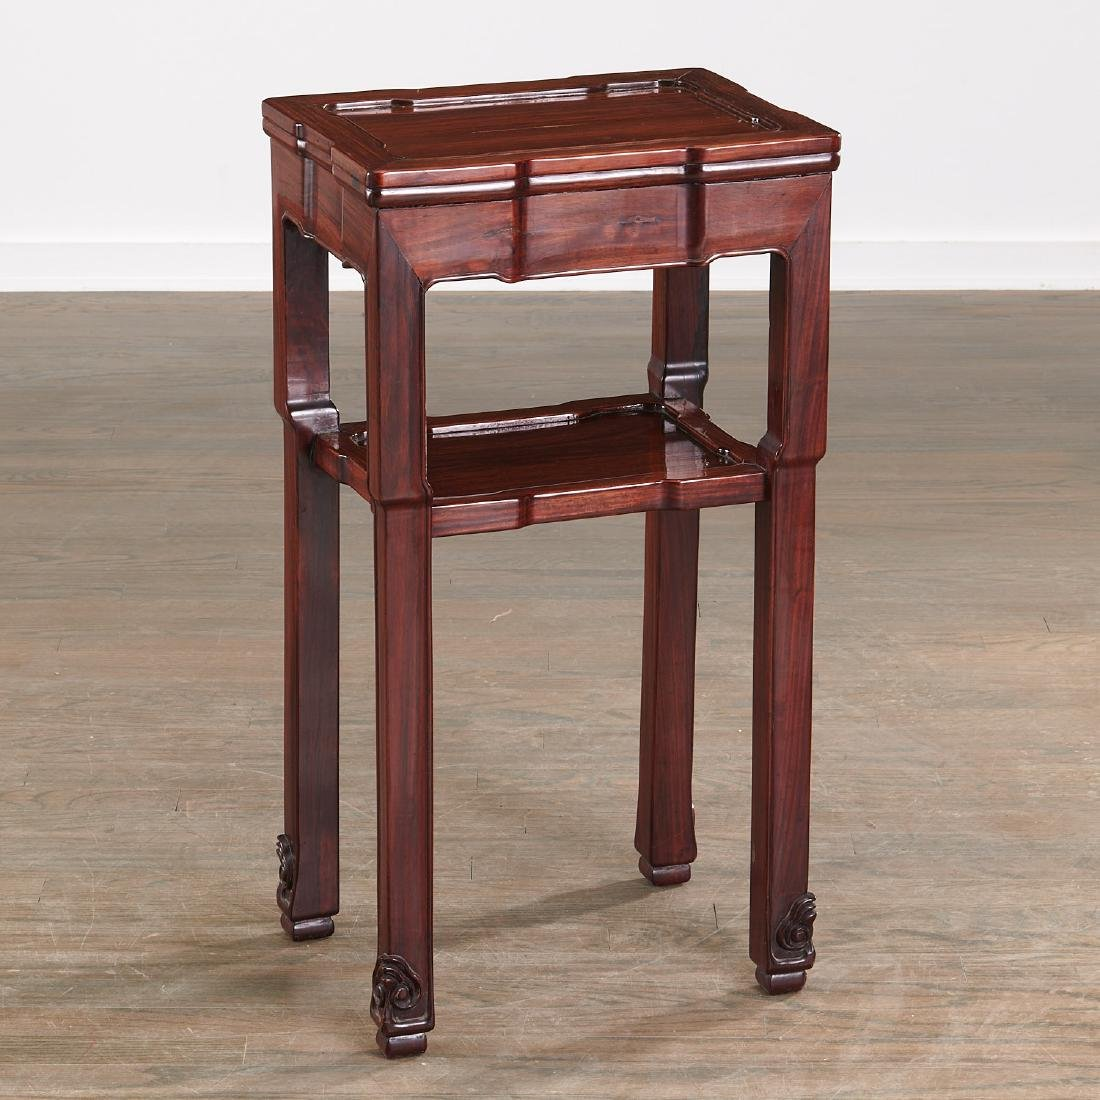 Chinese carved hardwood two-tier stand